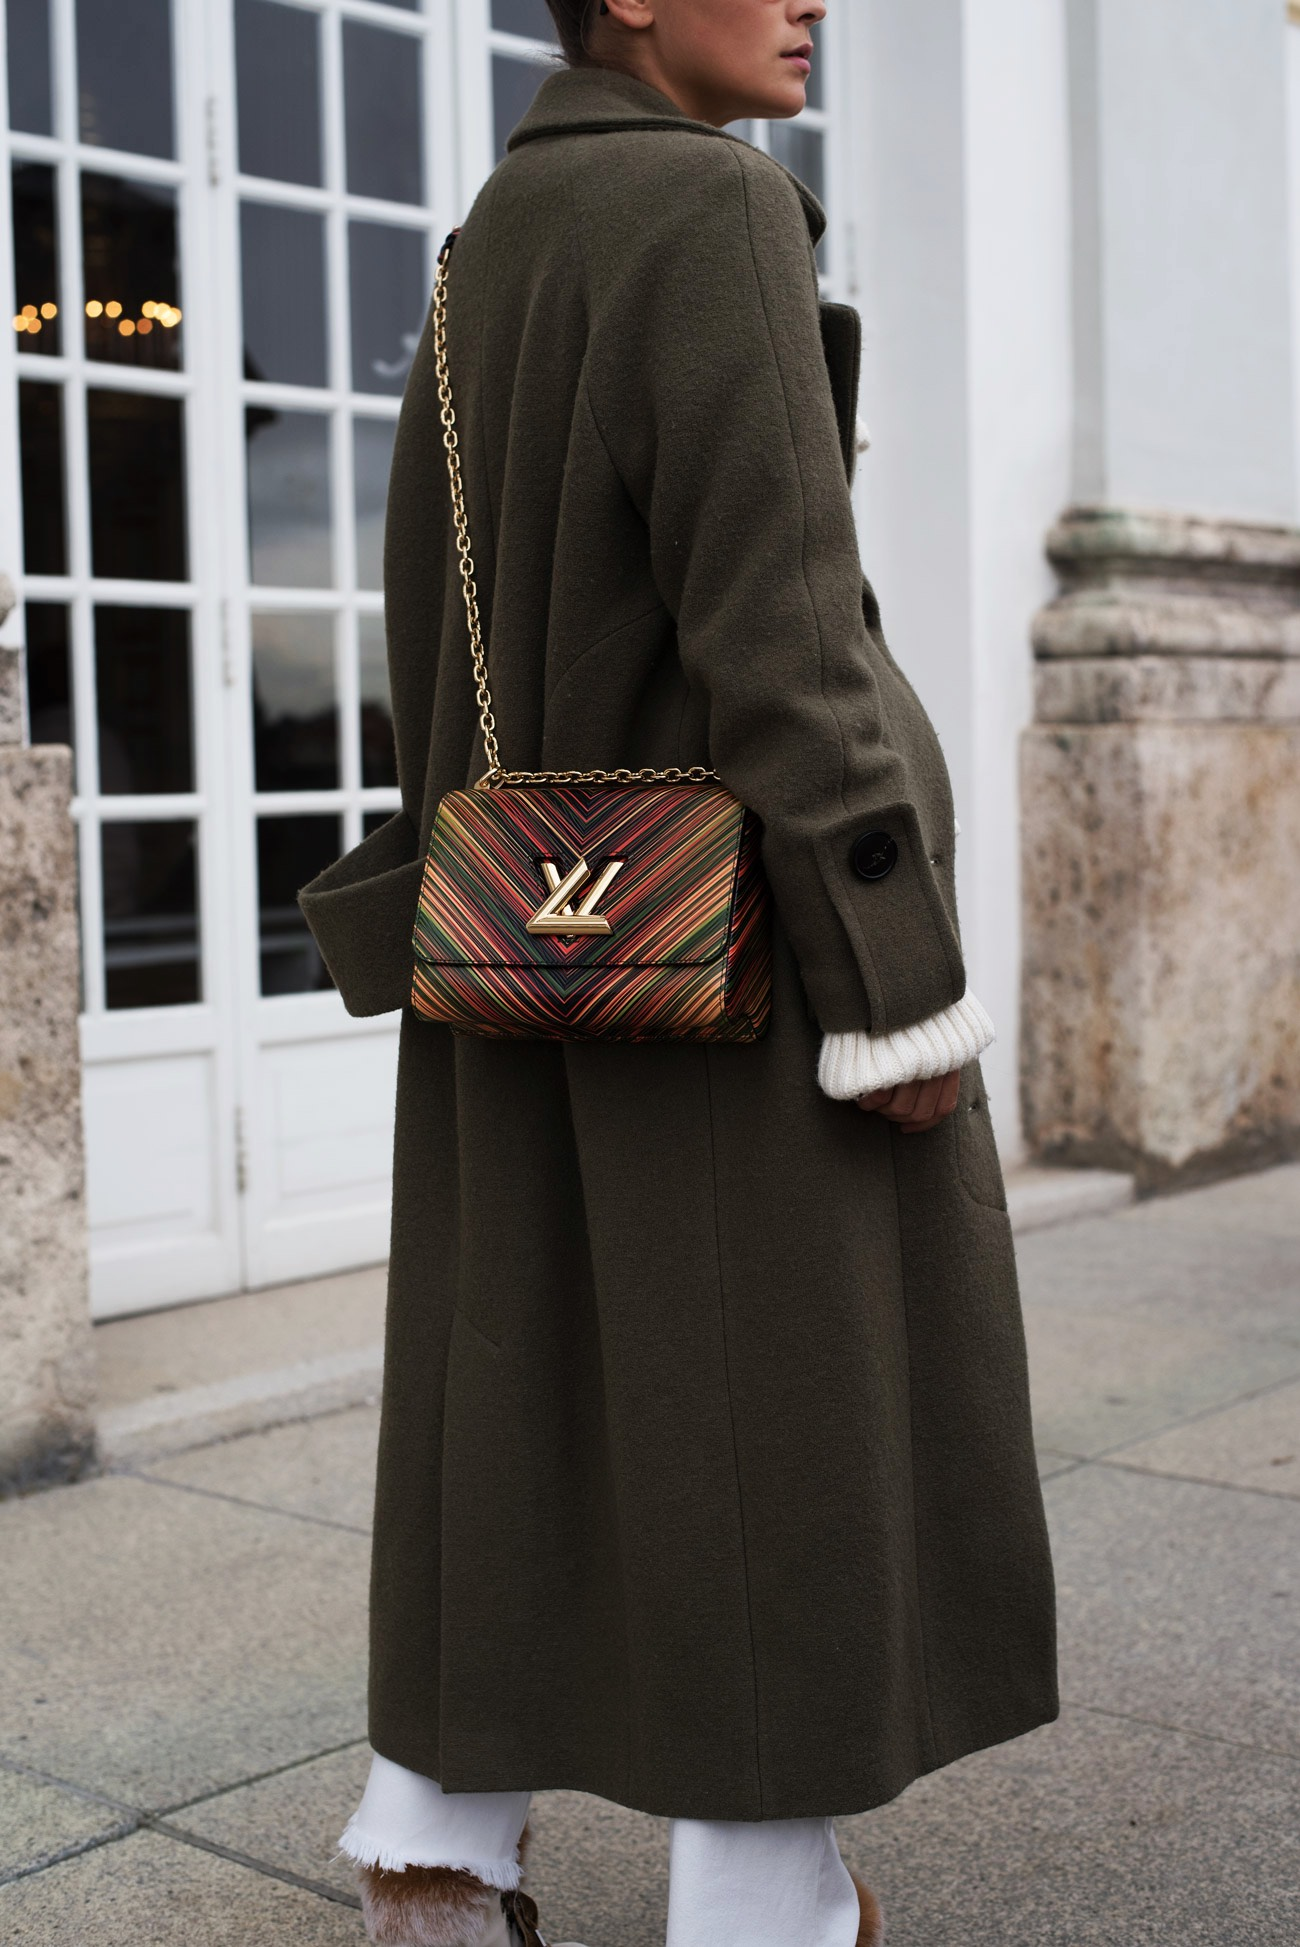 louis-vuitton-twist-mm-m5-1575-epi-leder-cuise-collection-2016-blogger-streetstyle-fashiioncarpet